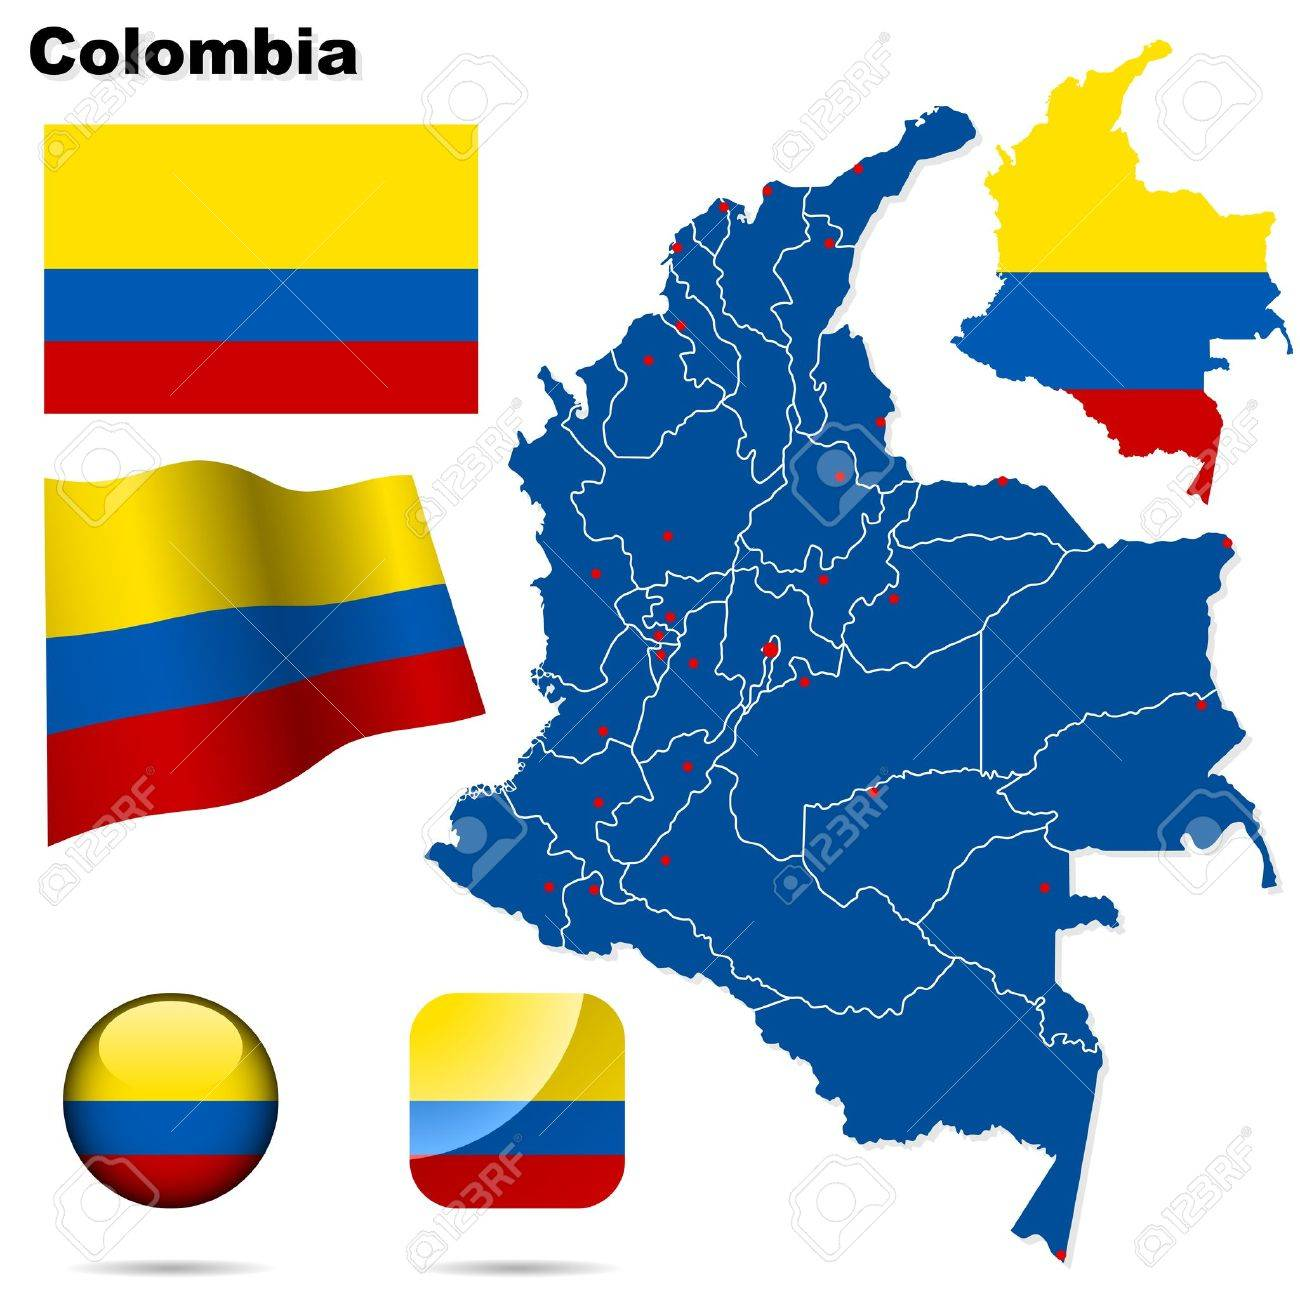 Colombia set. Detailed country shape with region borders, flags and icons isolated on white background. Stock Vector - 14969185